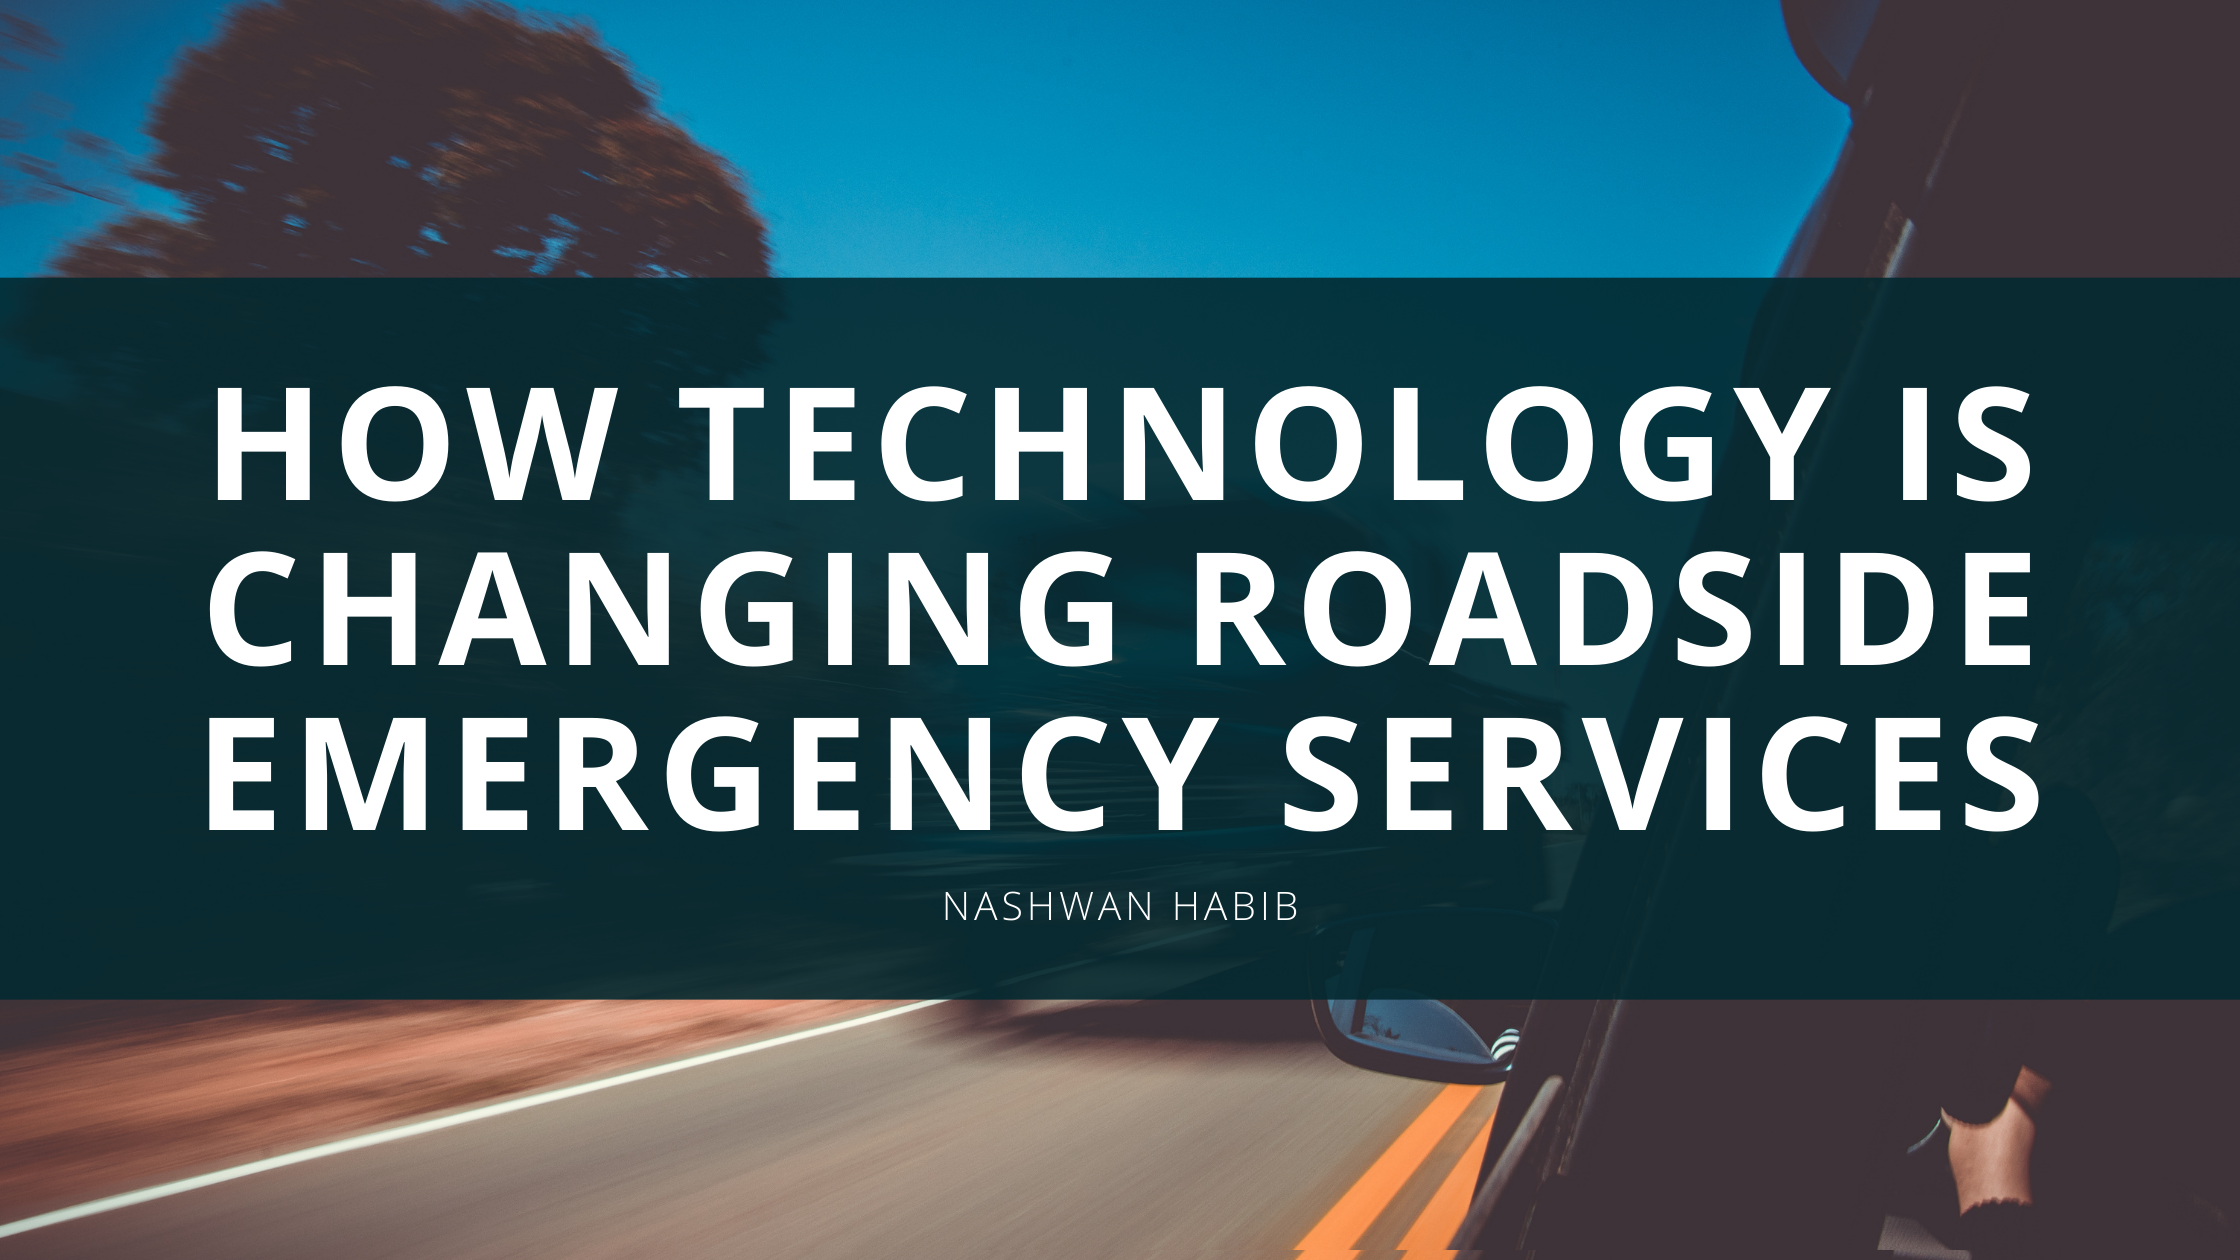 Nashwan Habib Outlines How Technology is Changing Roadside Emergency Services